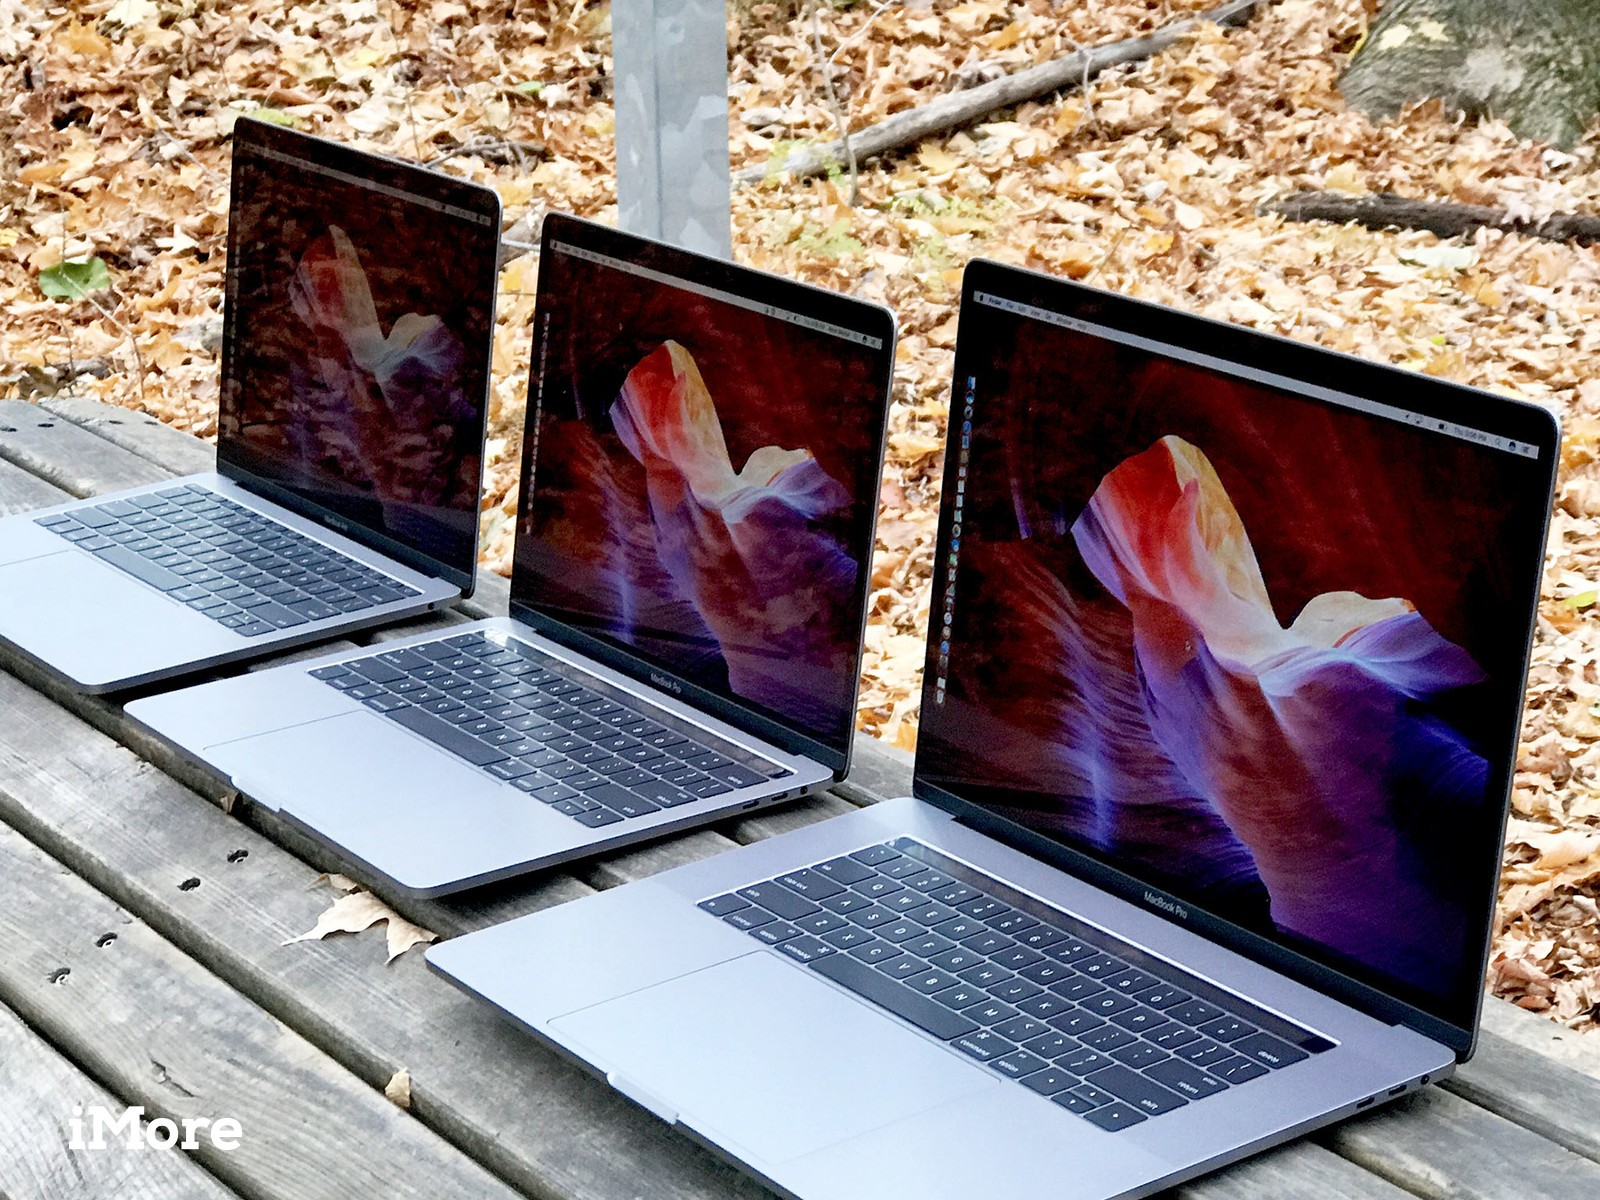 MacBook Pro 2016 review: The love/hate future of laptops